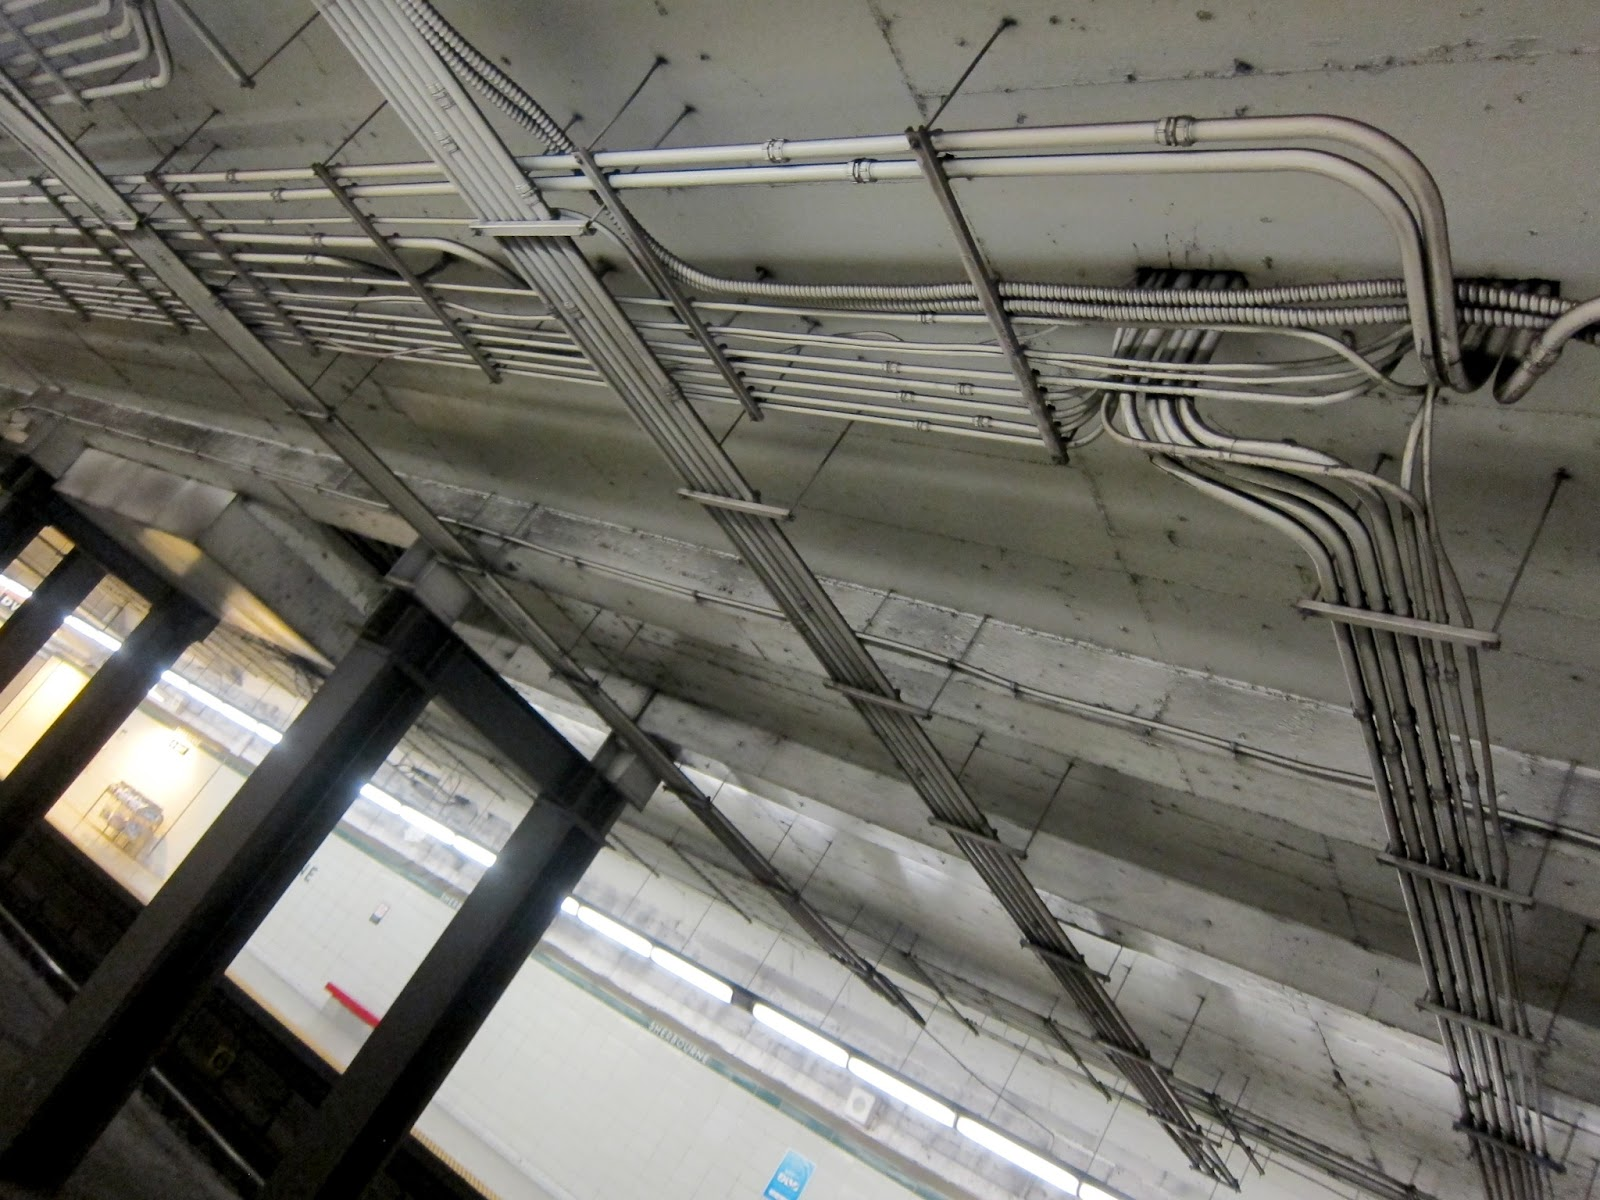 Electrical piping at Sherbourne station